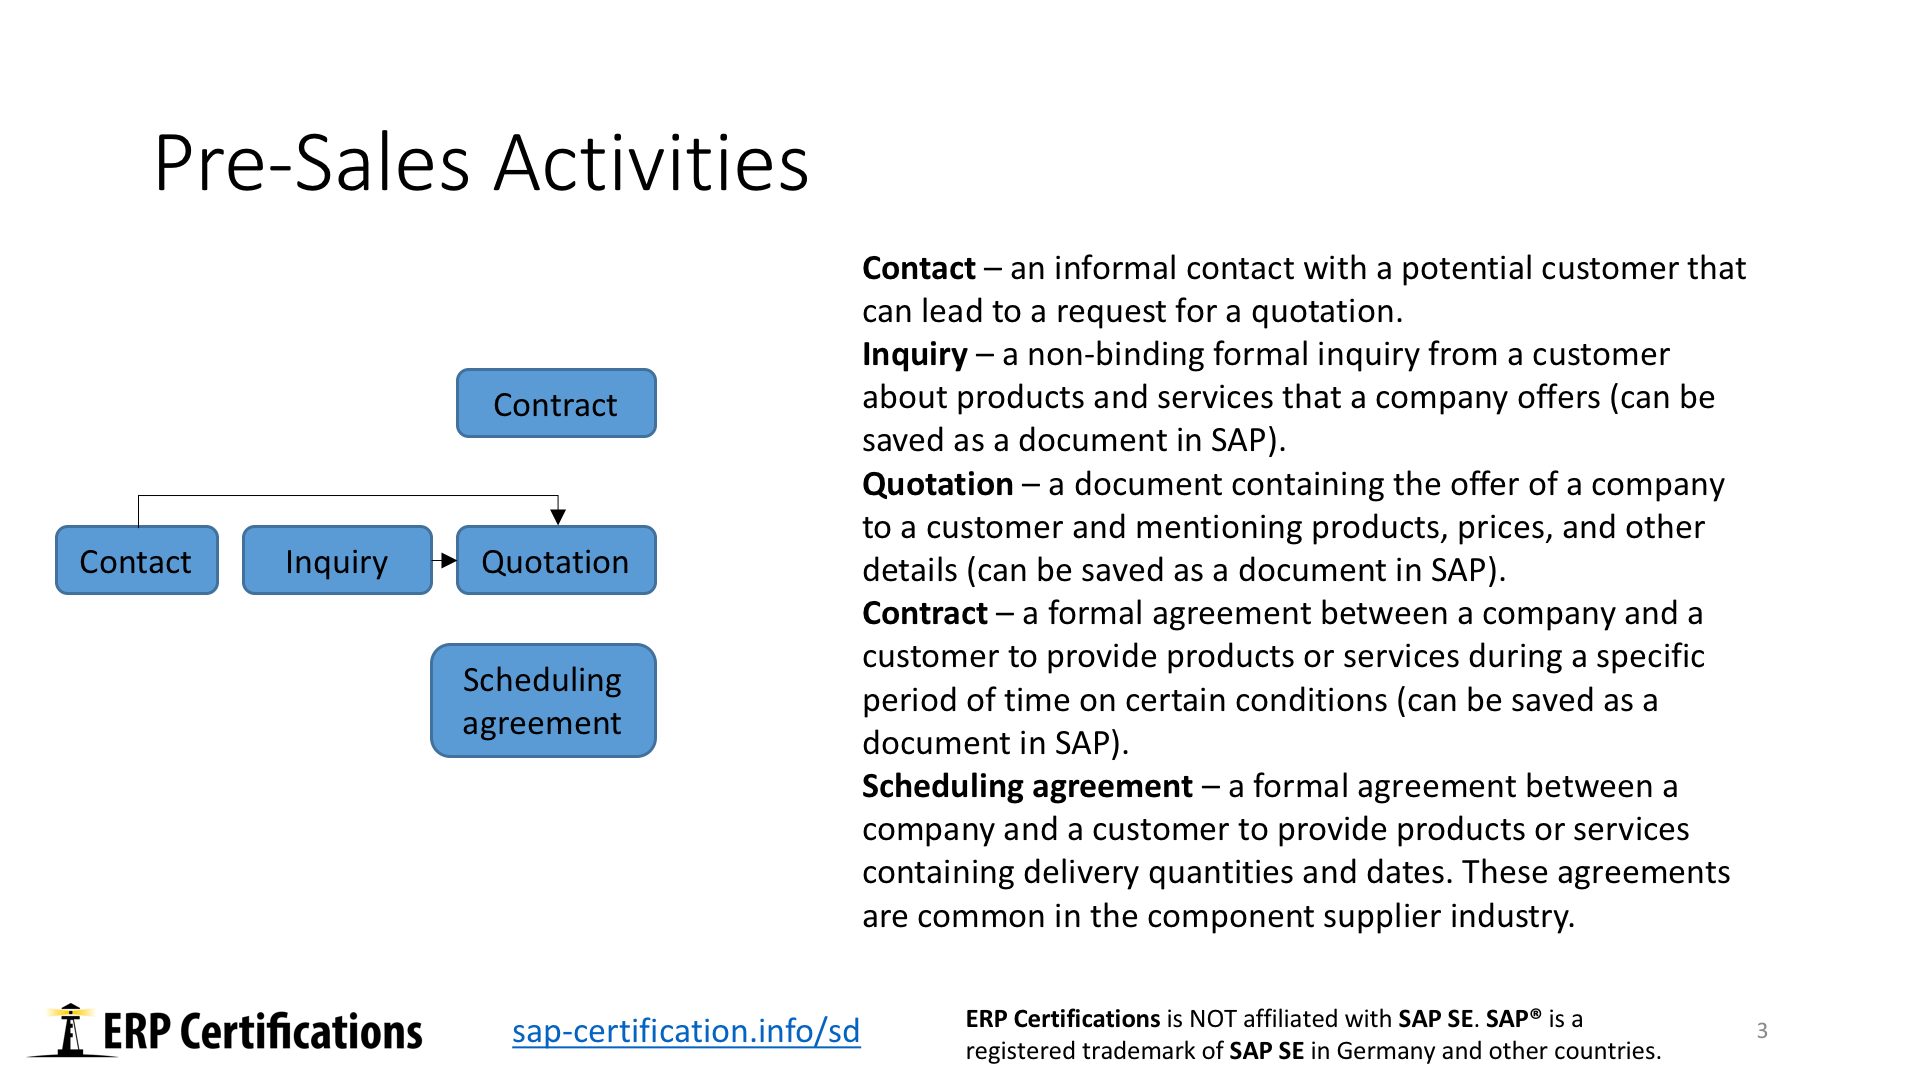 Pre-sales Activities in SAP Order to Cash Process